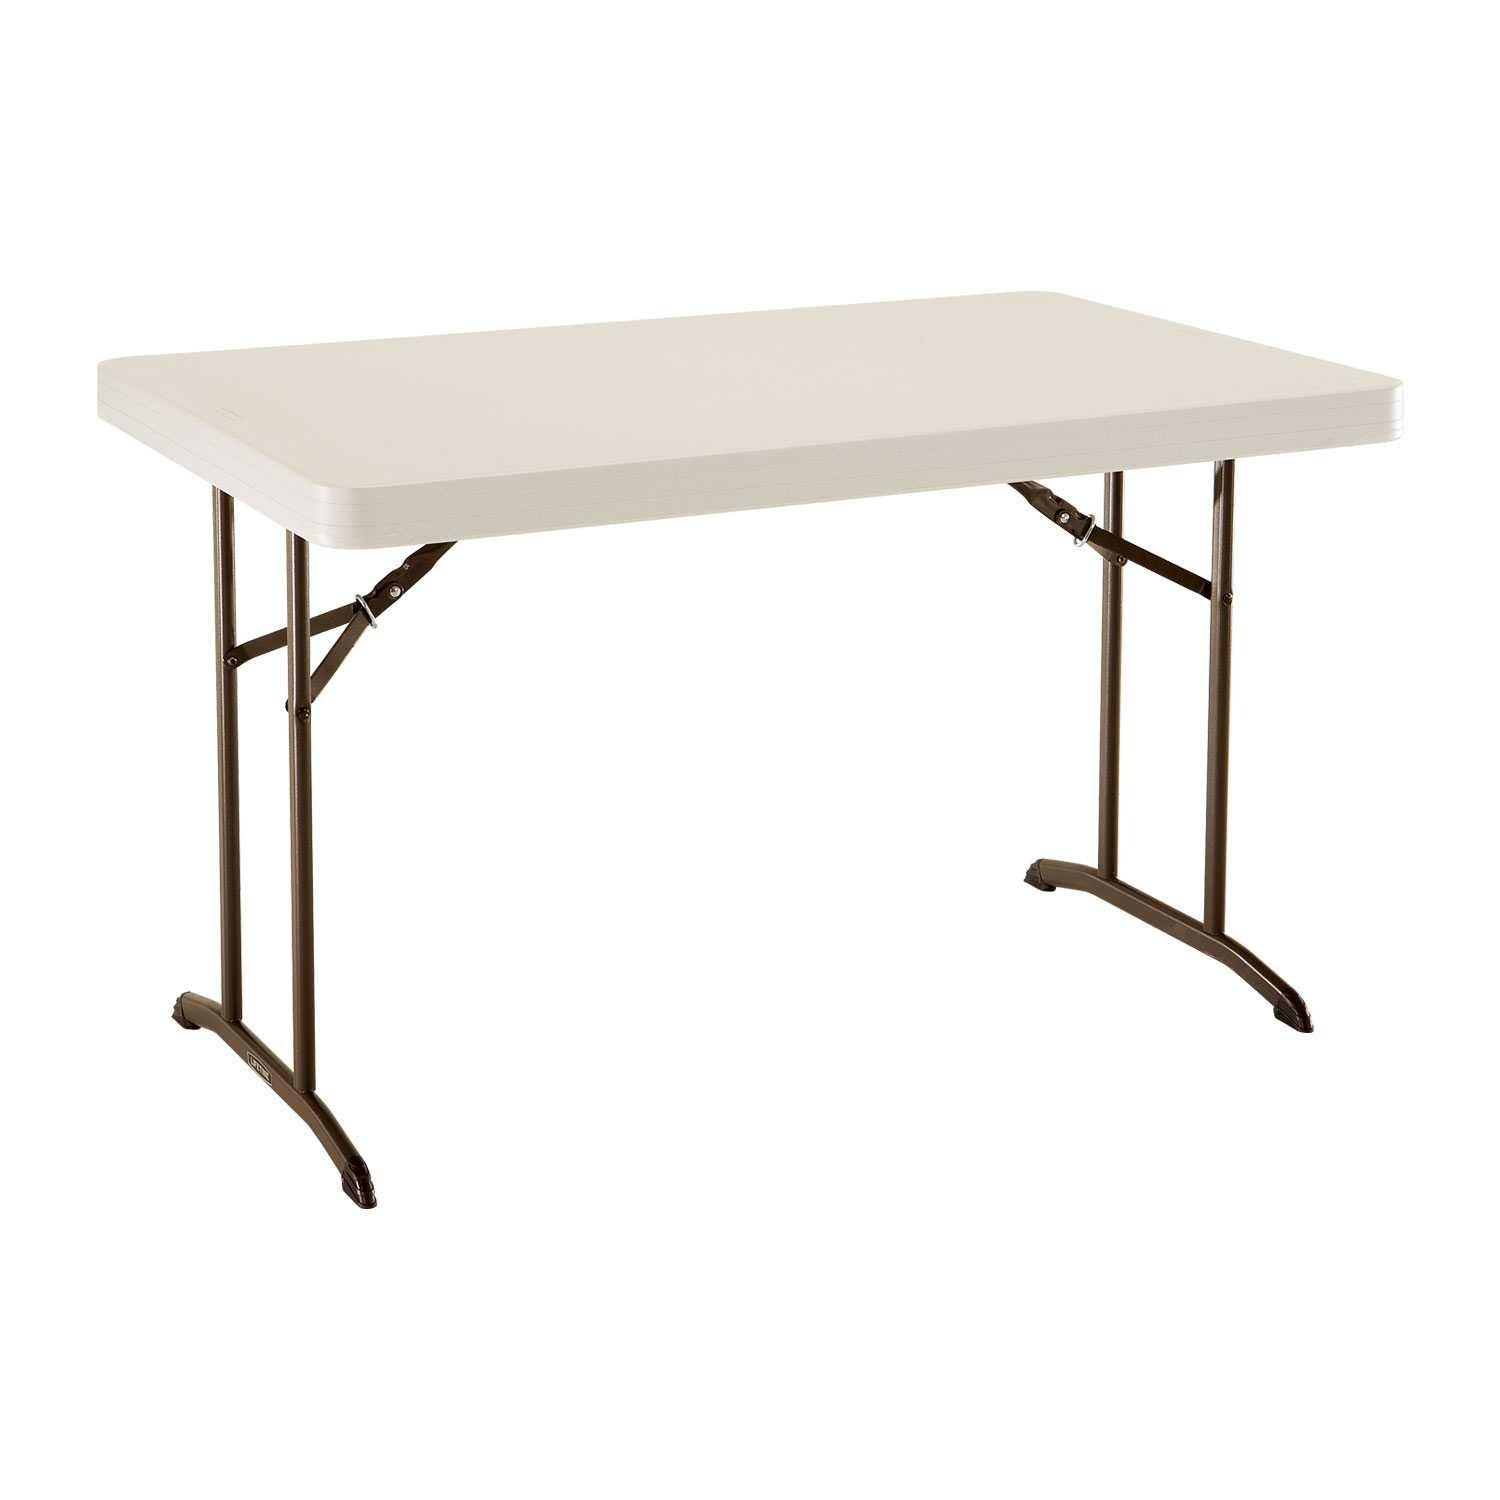 Lifetime 22645 Commercial Folding Table, 4 Feet, Almond by Lifetime